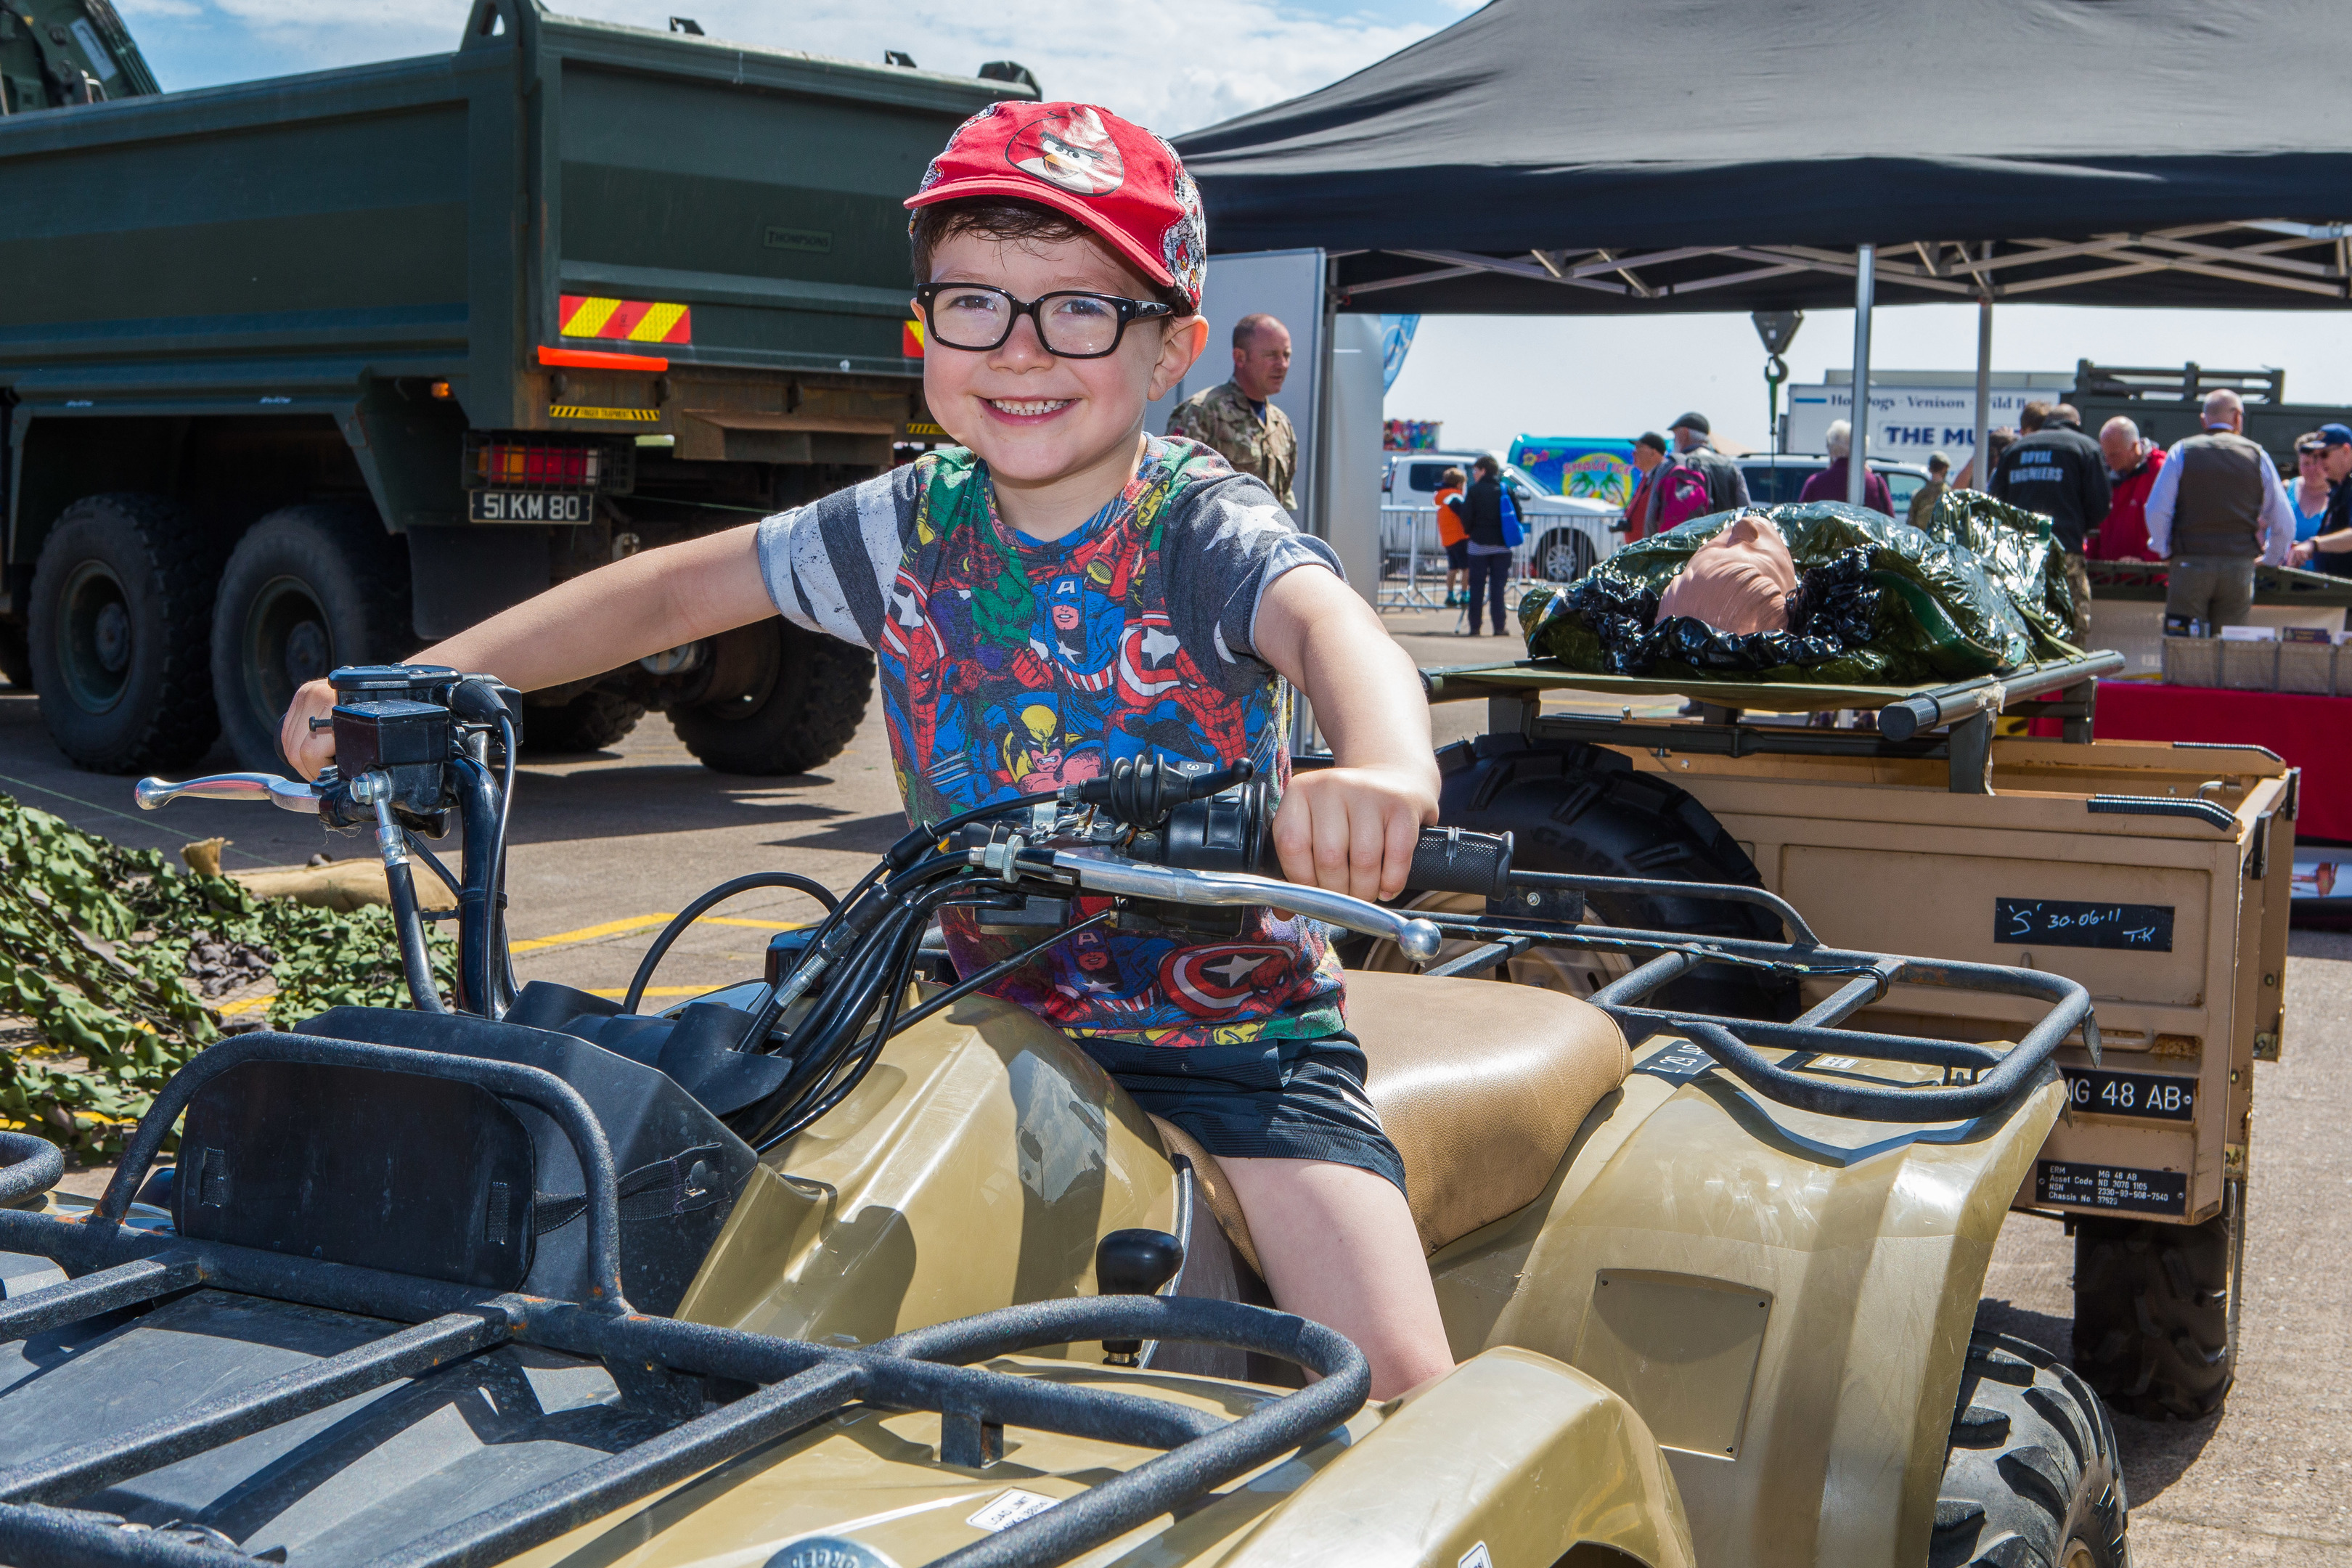 Owen Lovell, 5, from Leuchars, tries out a medical quad bike